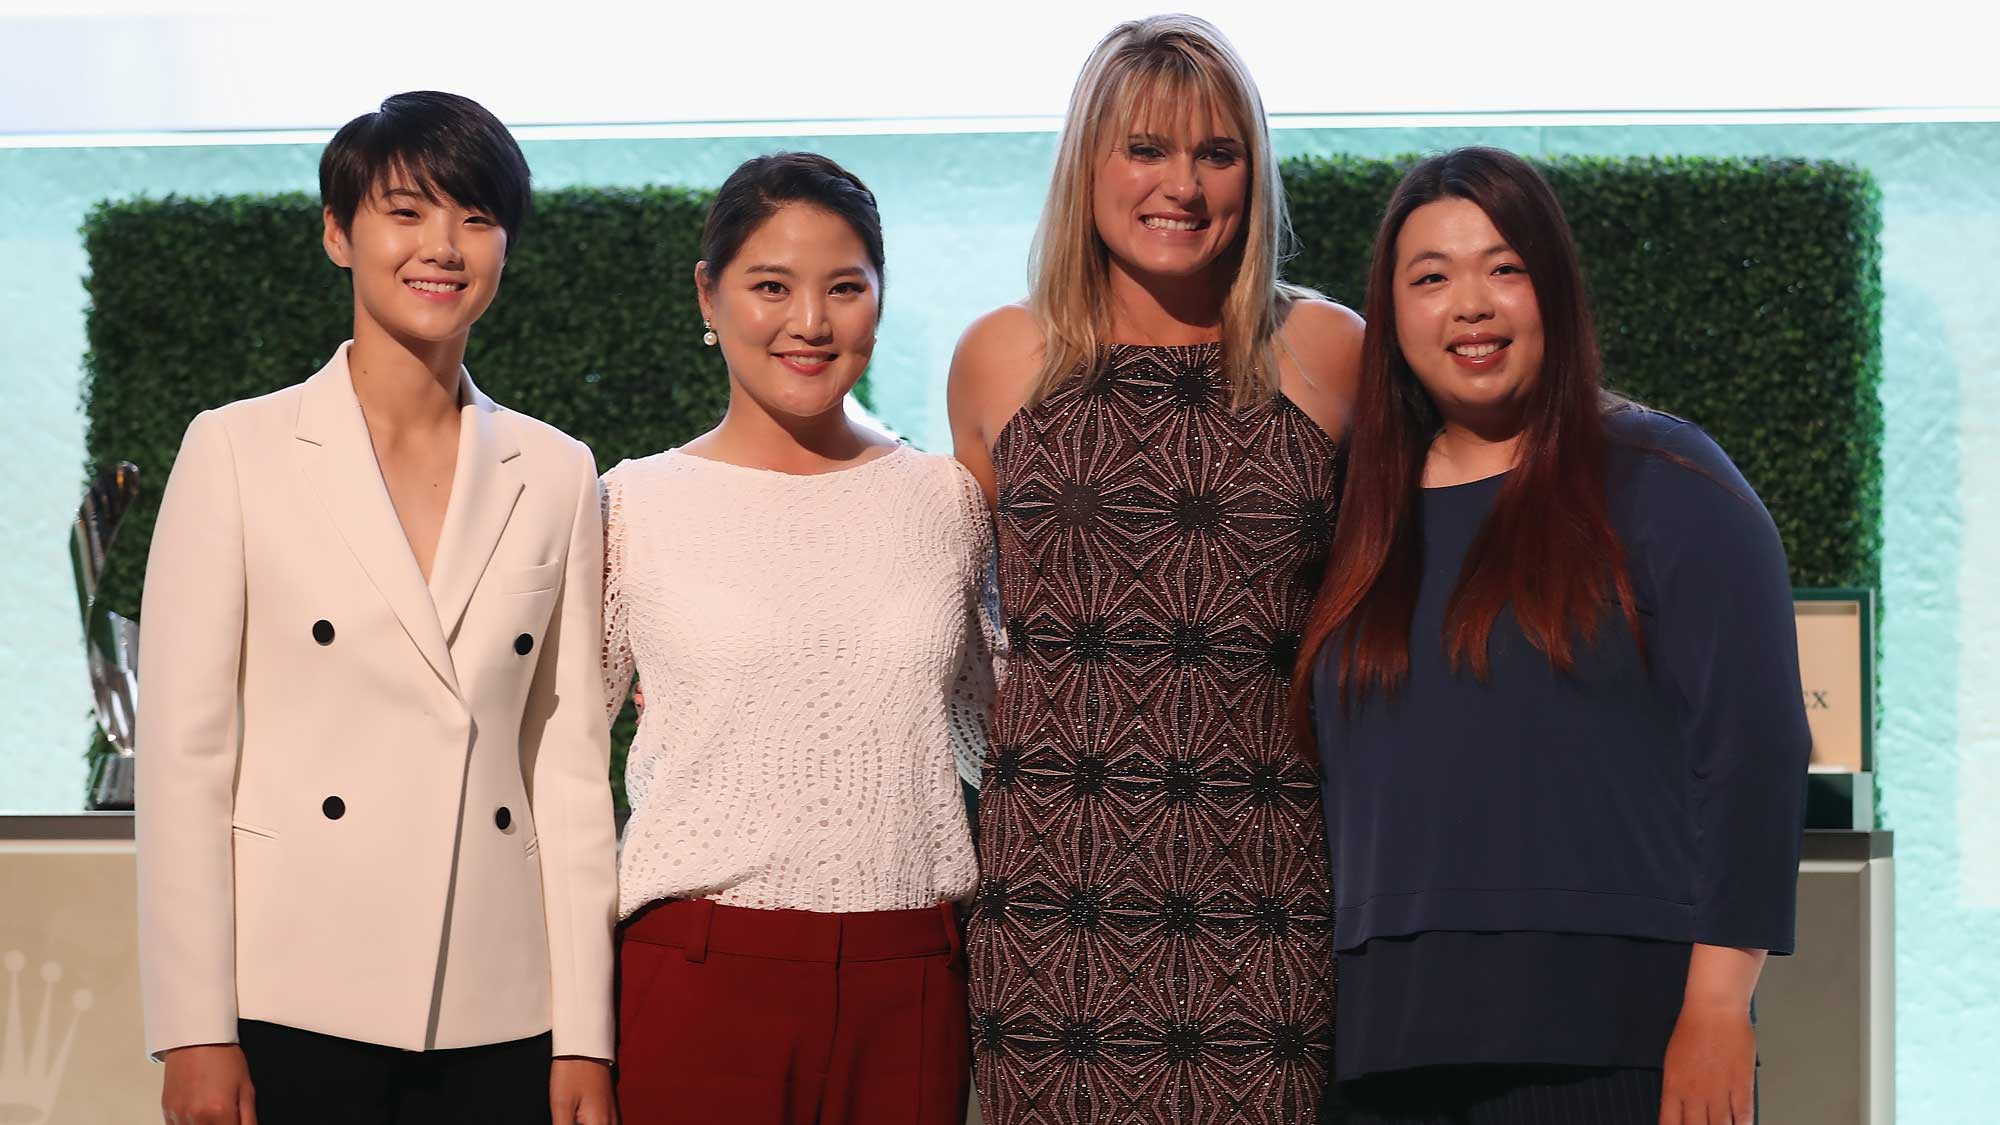 (L-R) Sung Hyun Park of Korea, So Yeon Ryu of Korea, Lexi Thompson of the United States and Shanshan Feng of China pose during the LPGA Rolex Players Awards at The Ritz-Carlton Golf Resort